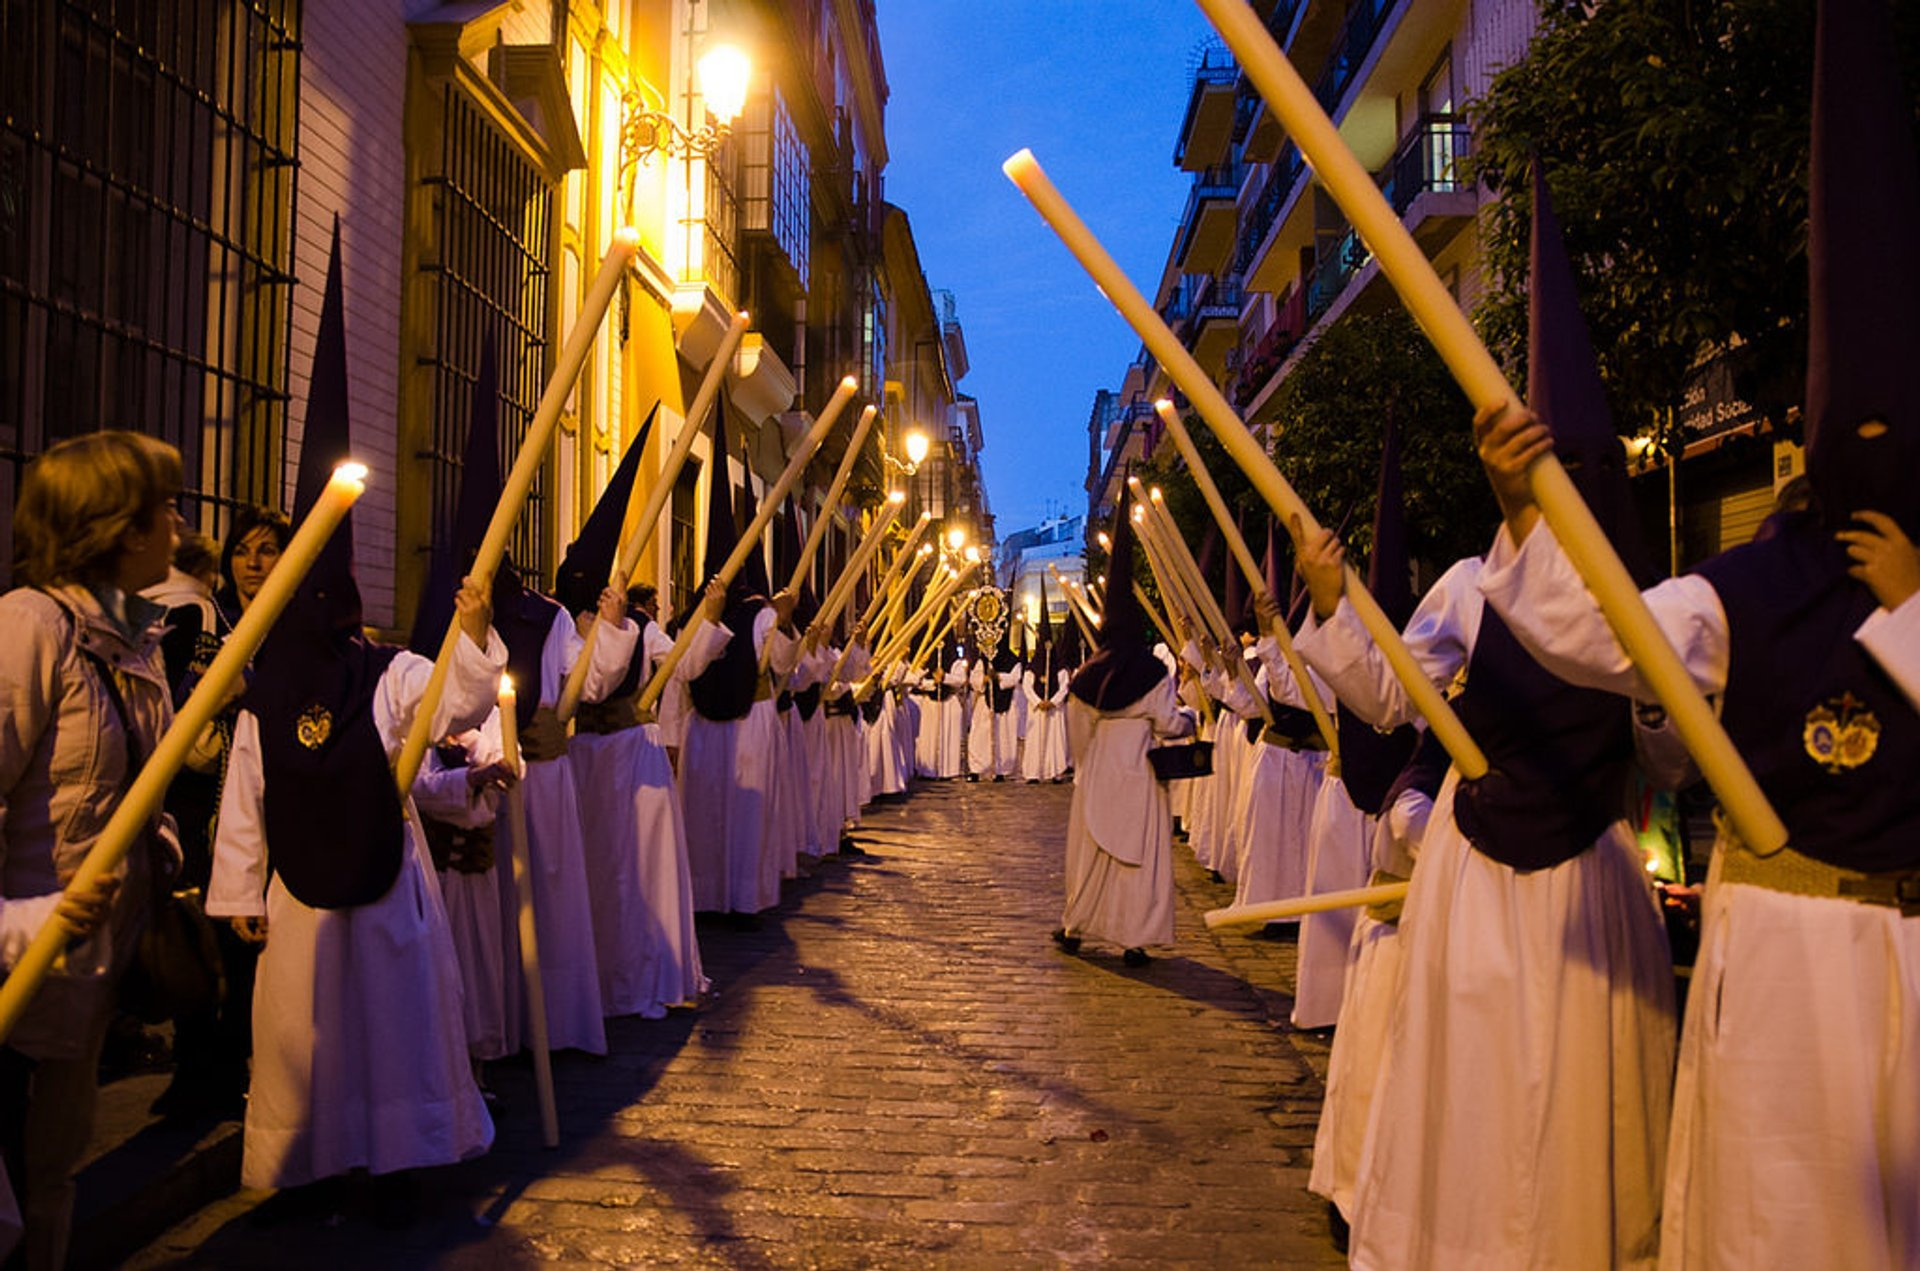 Semana Santa (Holy Week) & Easter in Spain - Best Season 2020